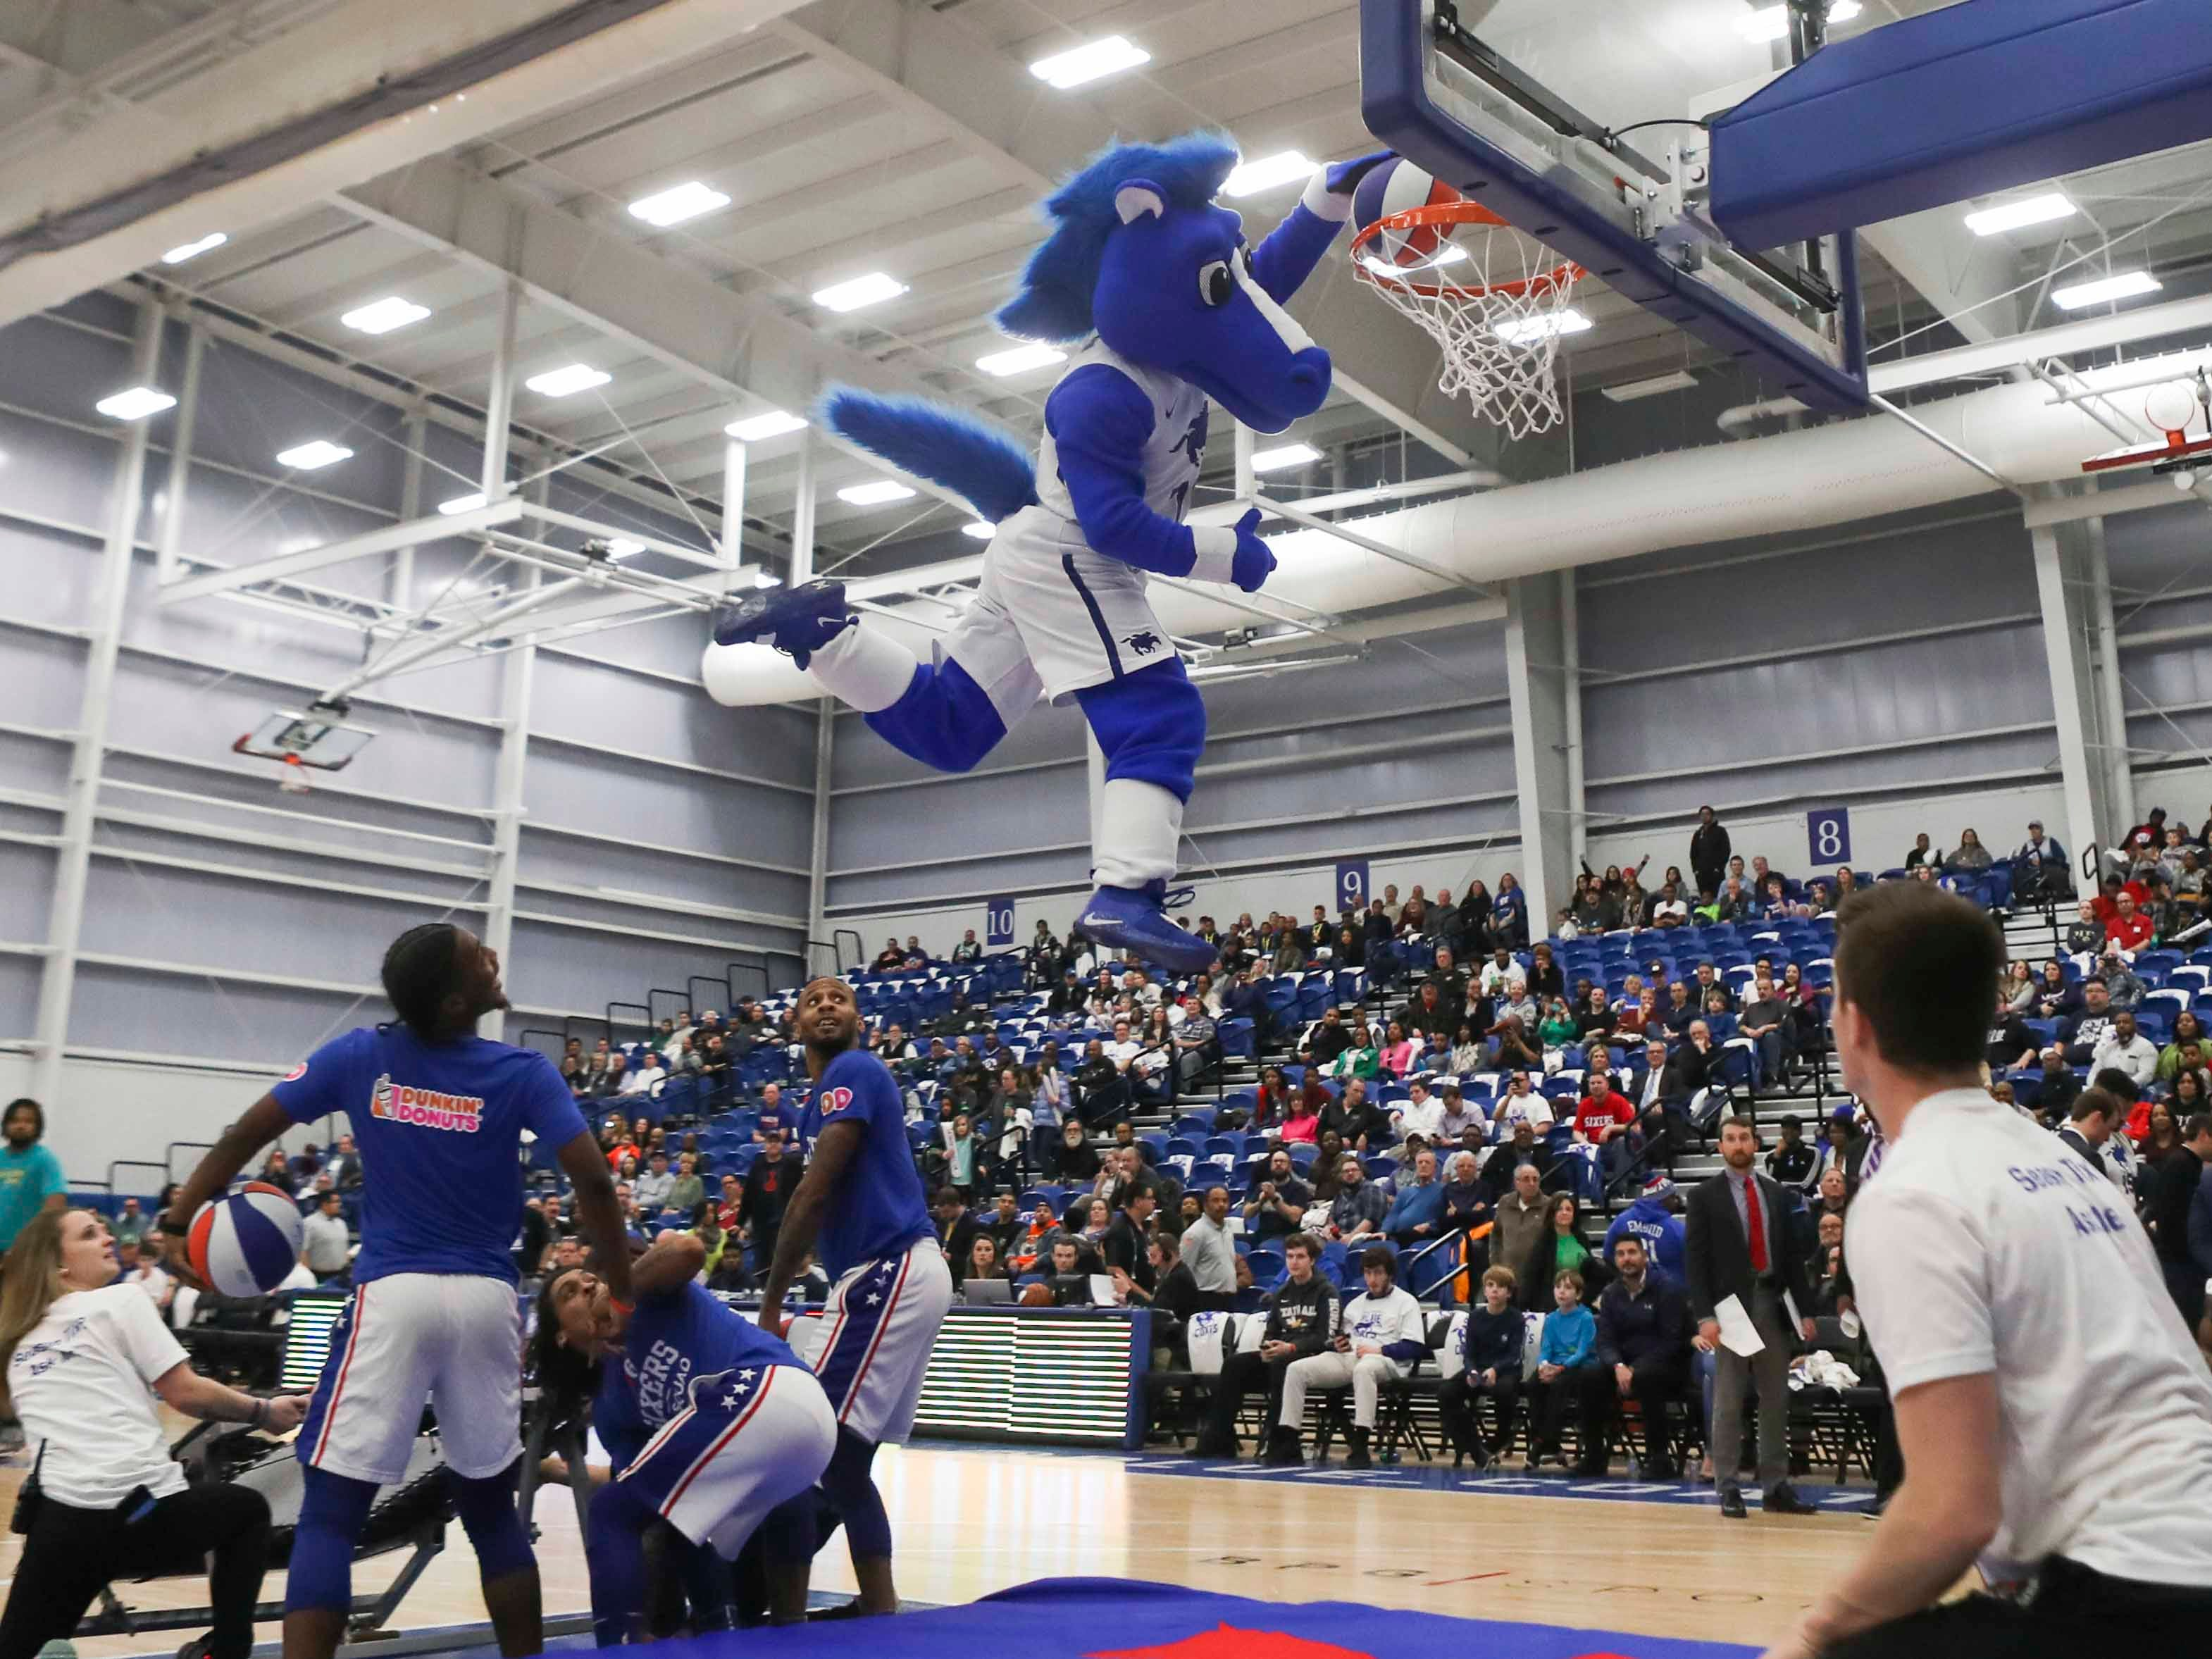 Coaty gets air for a slam as the Delaware Blue Coats of the NBA G-League open the 76ers Field House in Wilmington Wednesday.